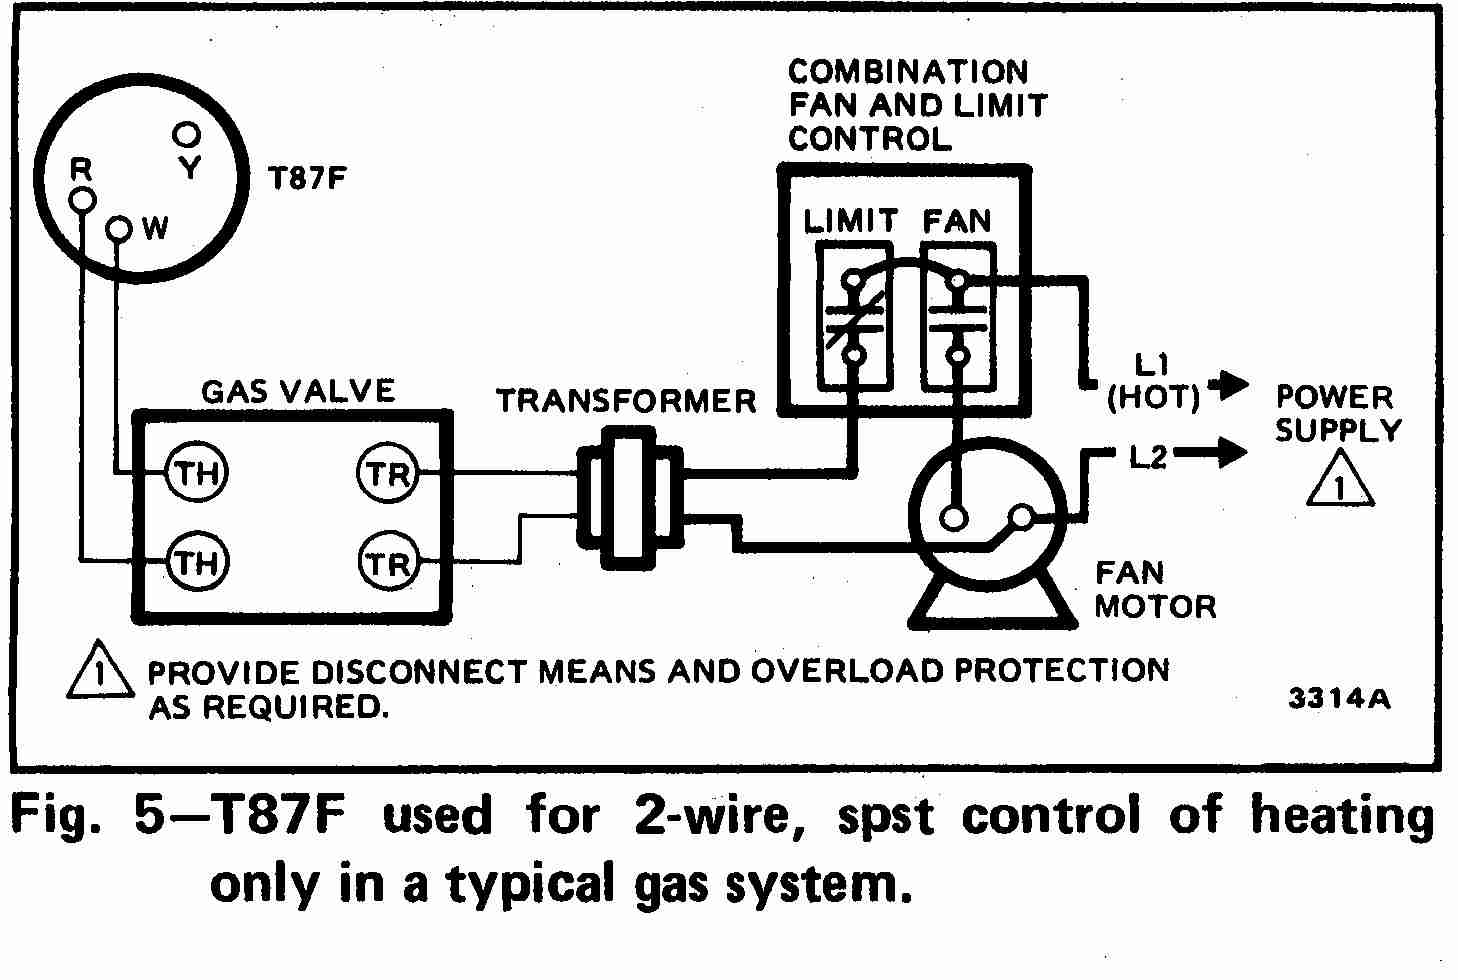 TT_T87F_0002_2Wg_DJF zone valve wiring installation & instructions guide to heating honeywell v8043 zone valve wiring diagram at reclaimingppi.co